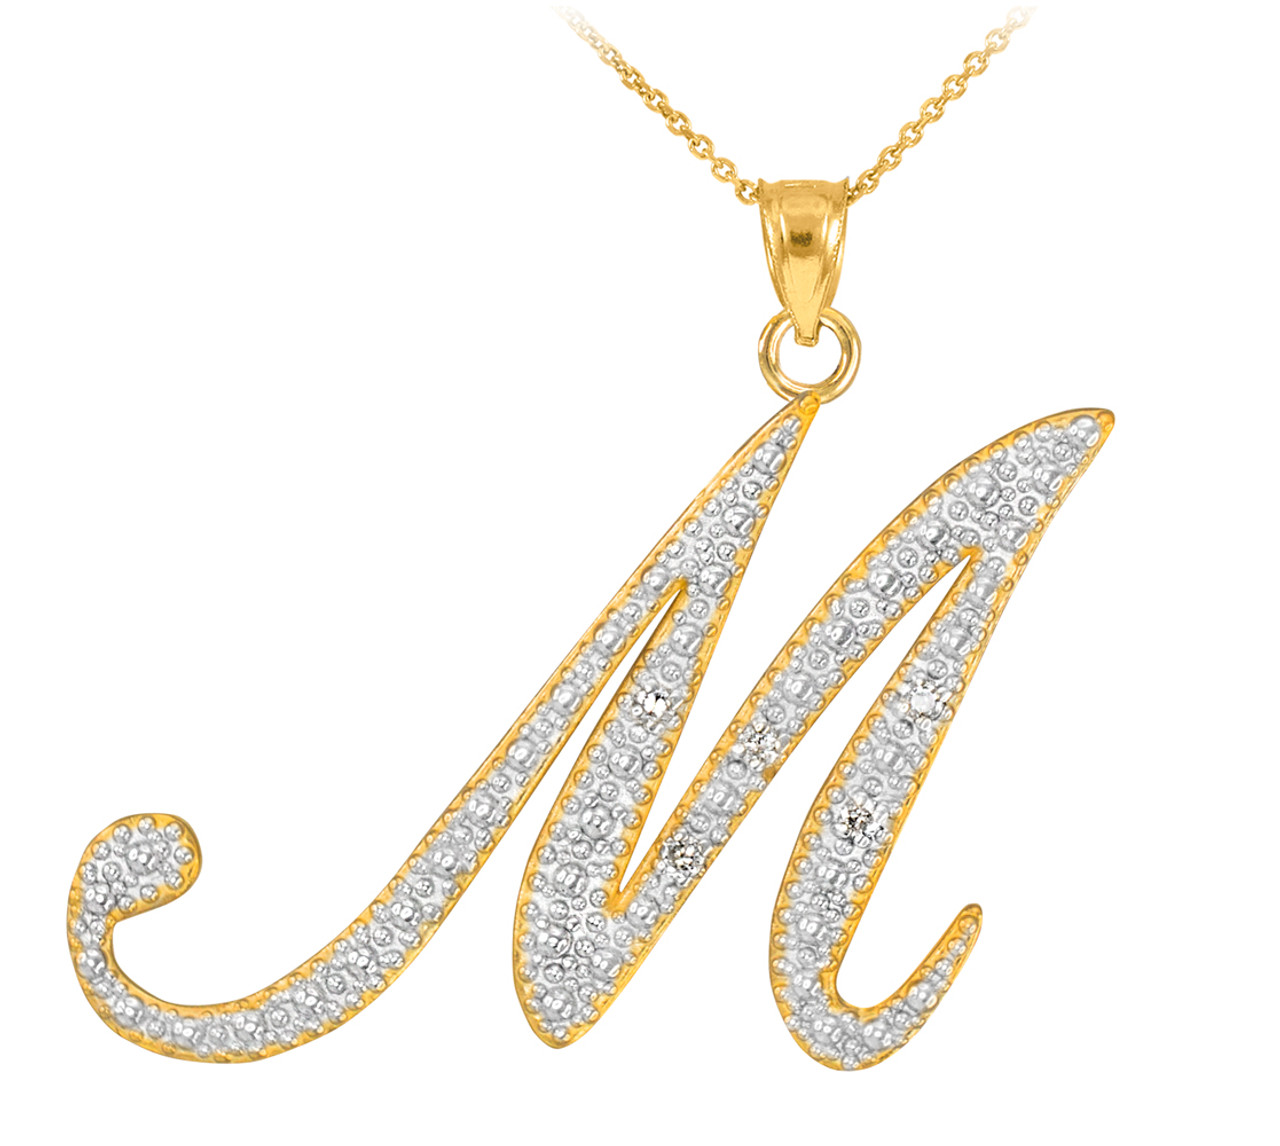 c pendant floral jewellery and fashion g returns large necklace delivery initial necklaces bs